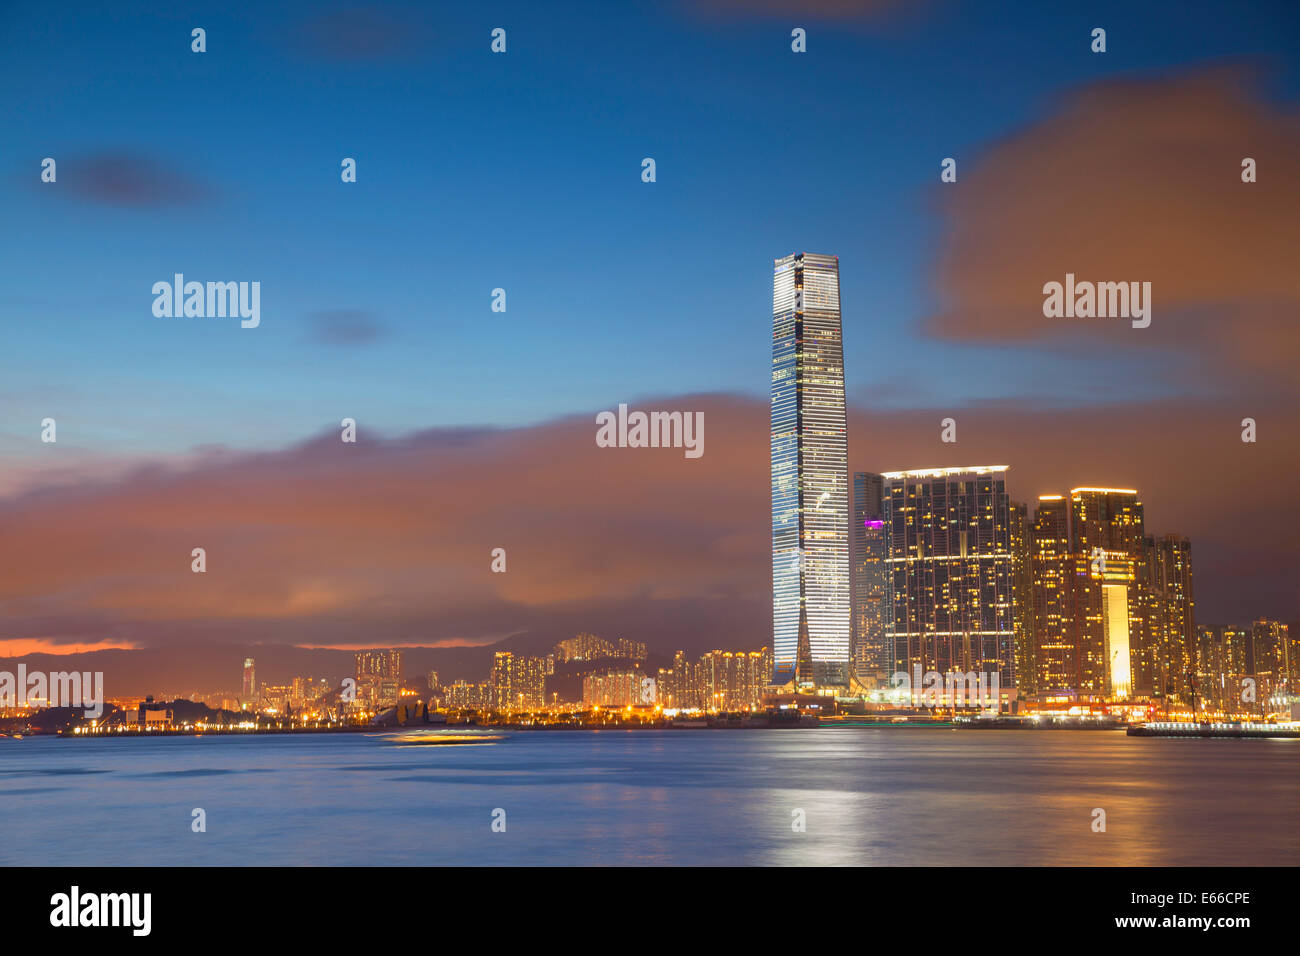 International Commerce Centre (ICC) at sunset, West Kowloon, Hong Kong - Stock Image